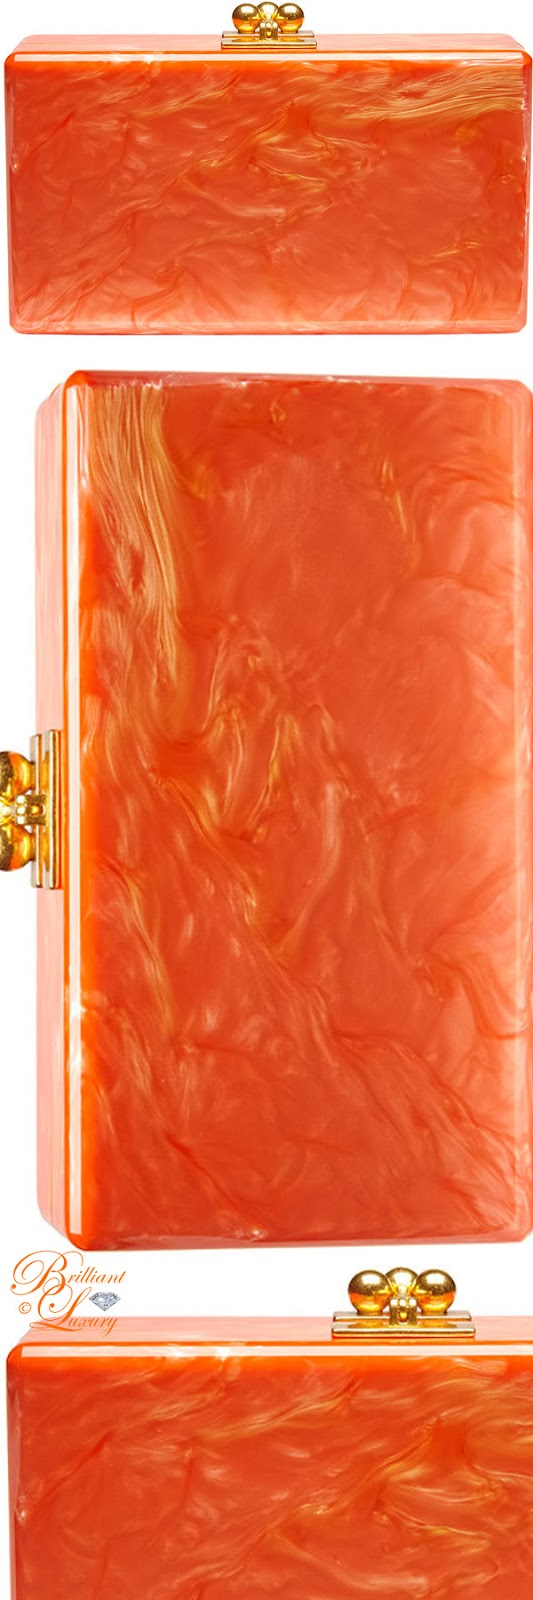 Brilliant Luxury ♦ Edie Parker Jean solid acrylic clutch bag #orange